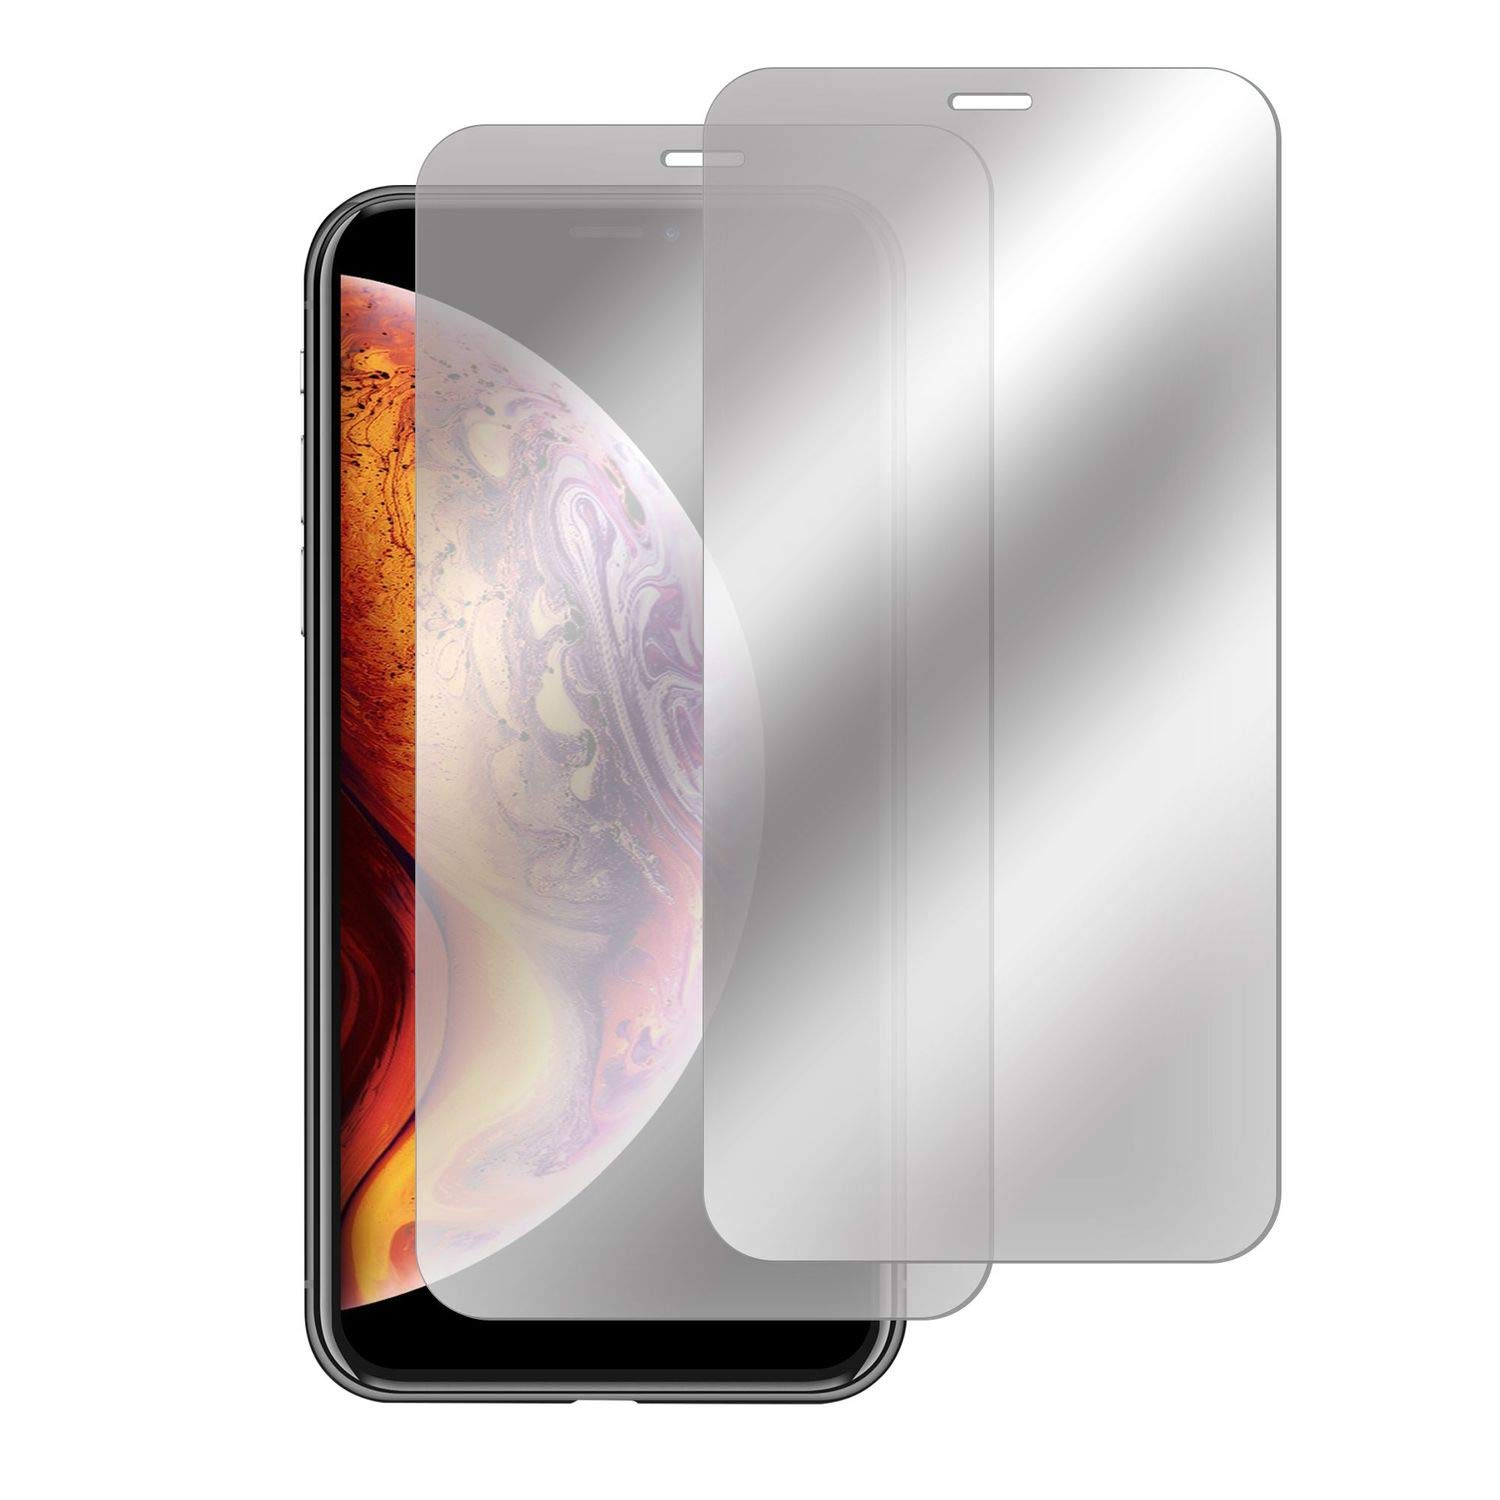 """Mirror Glass Screen Protector Compatible with iPhone 11 Pro Max 6.5"""" 2019 [2 Pack] Insten Full Protection Mirror Tempered Glass Film Shield Guard [Case Friendly][Anti-Scratch][Anti-Fingerprints]"""